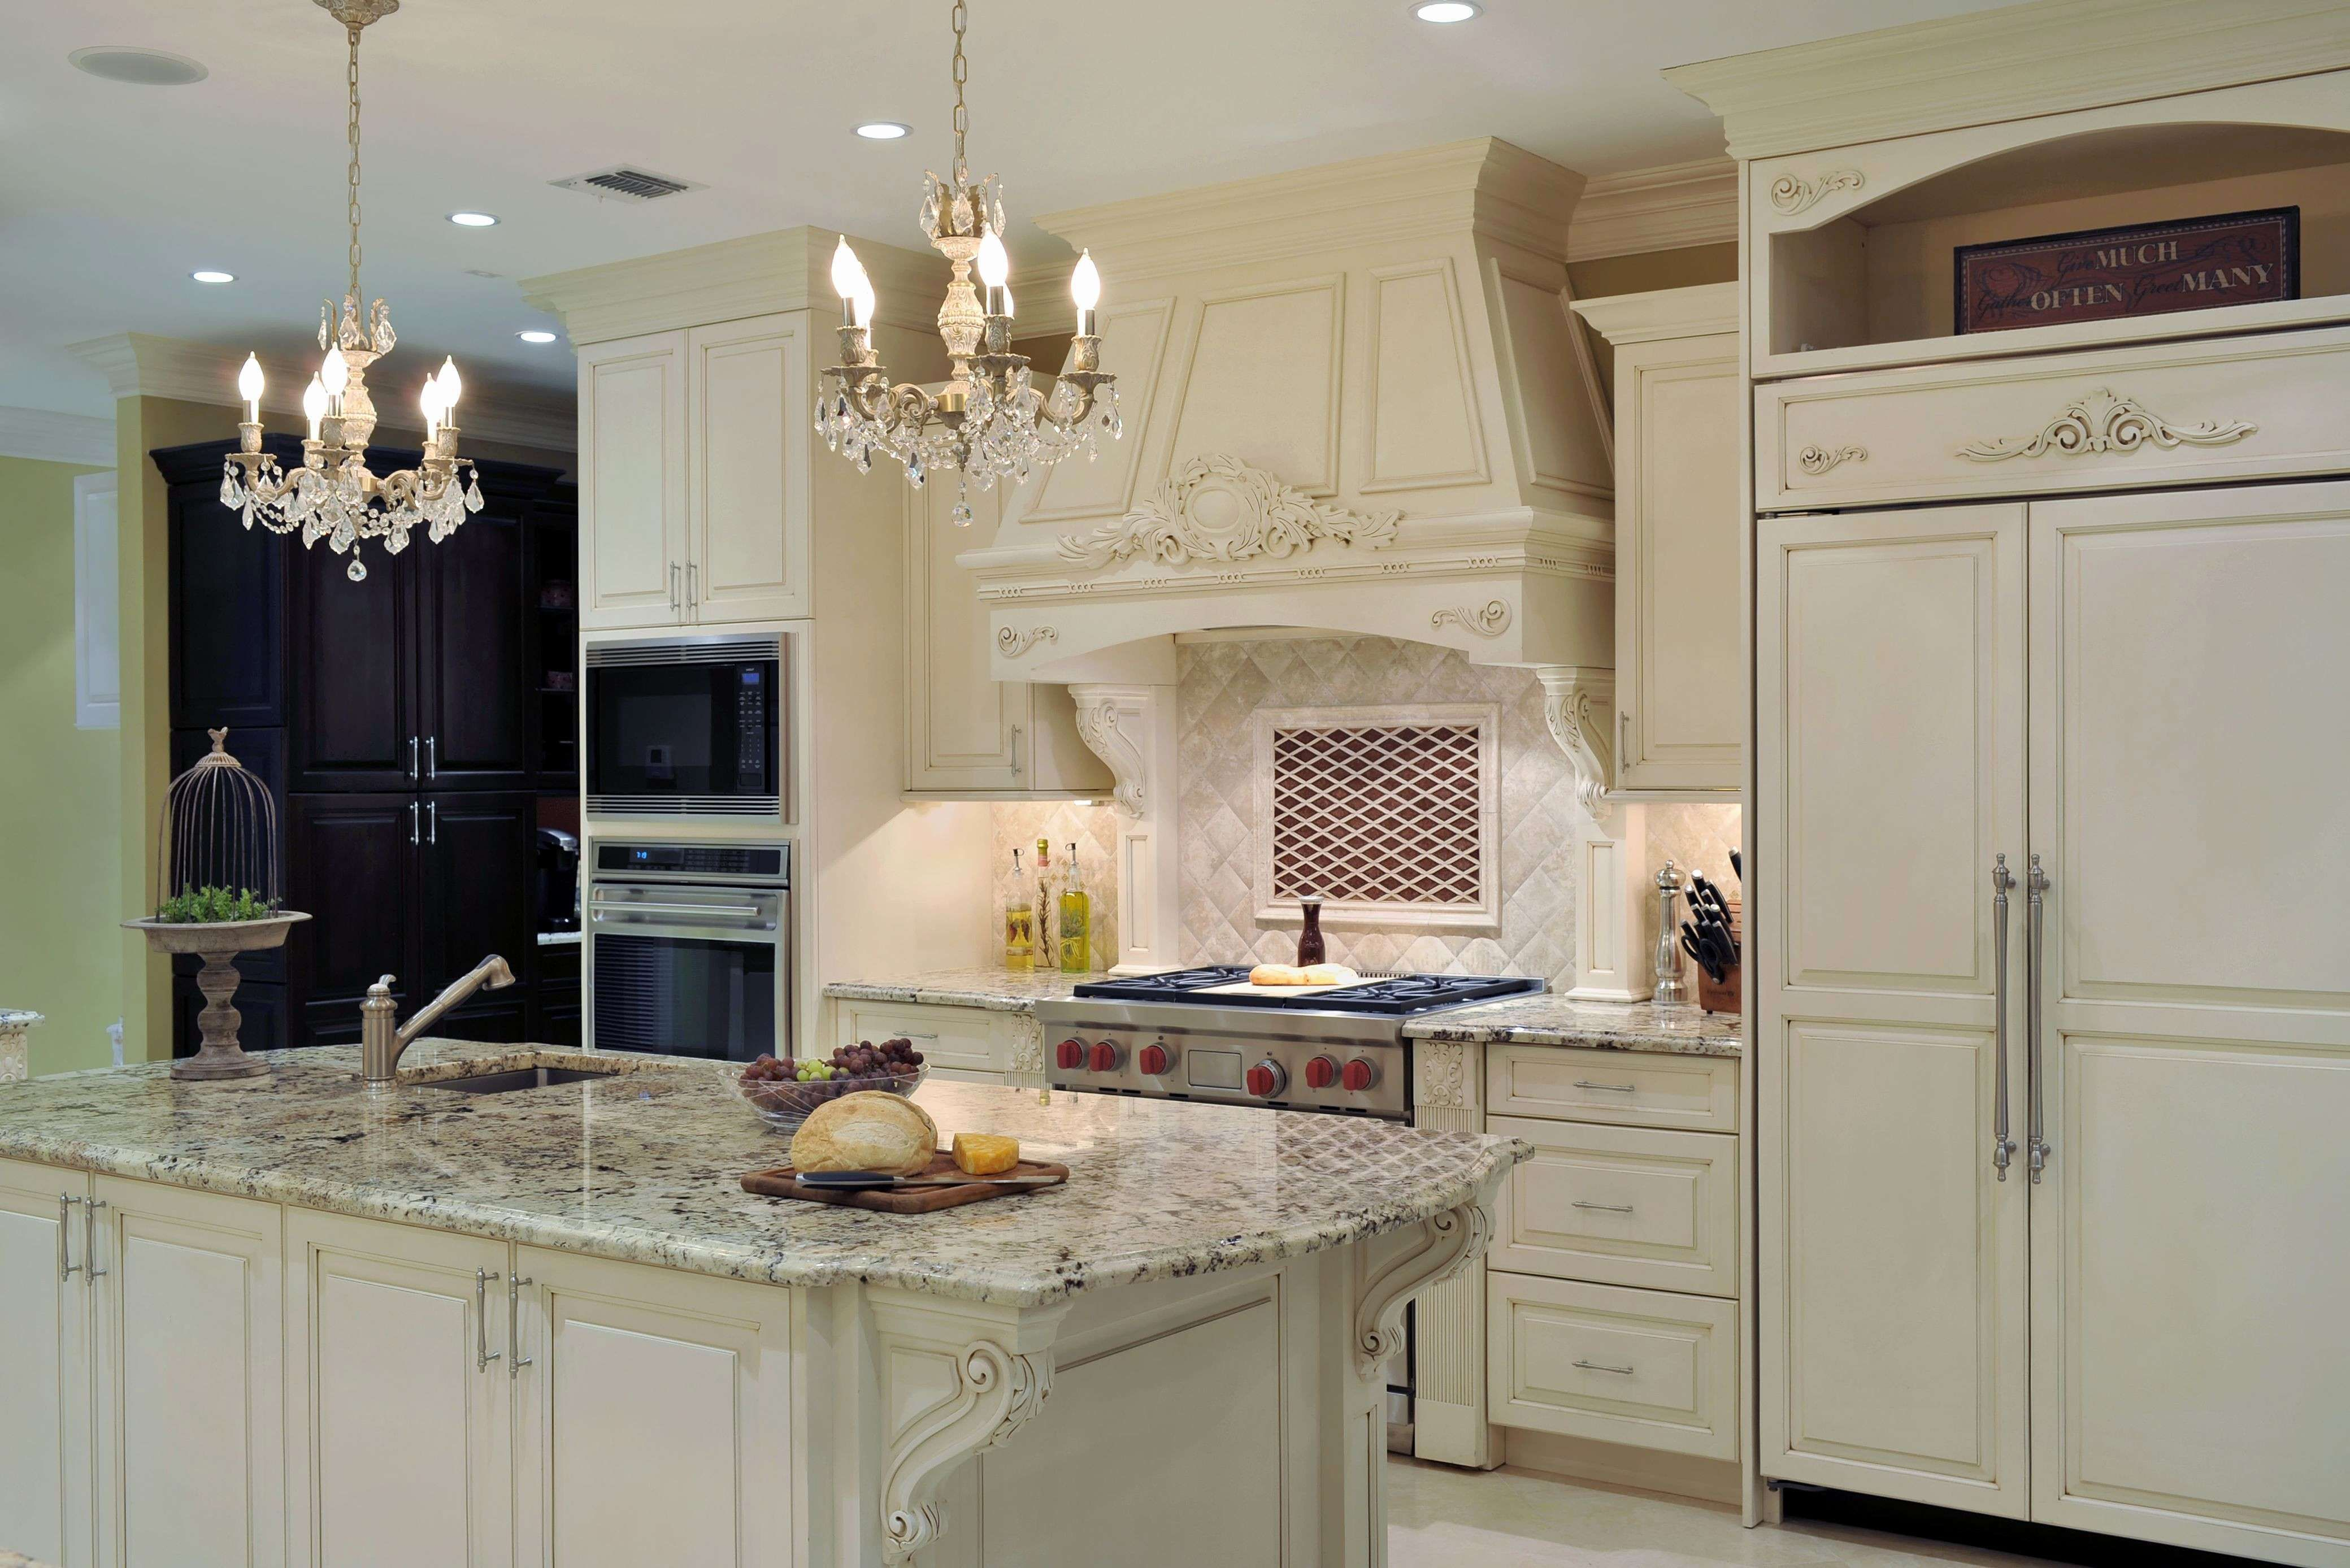 - 12 Kitchen Backsplash Pictures Pictures In 2020 Beautiful